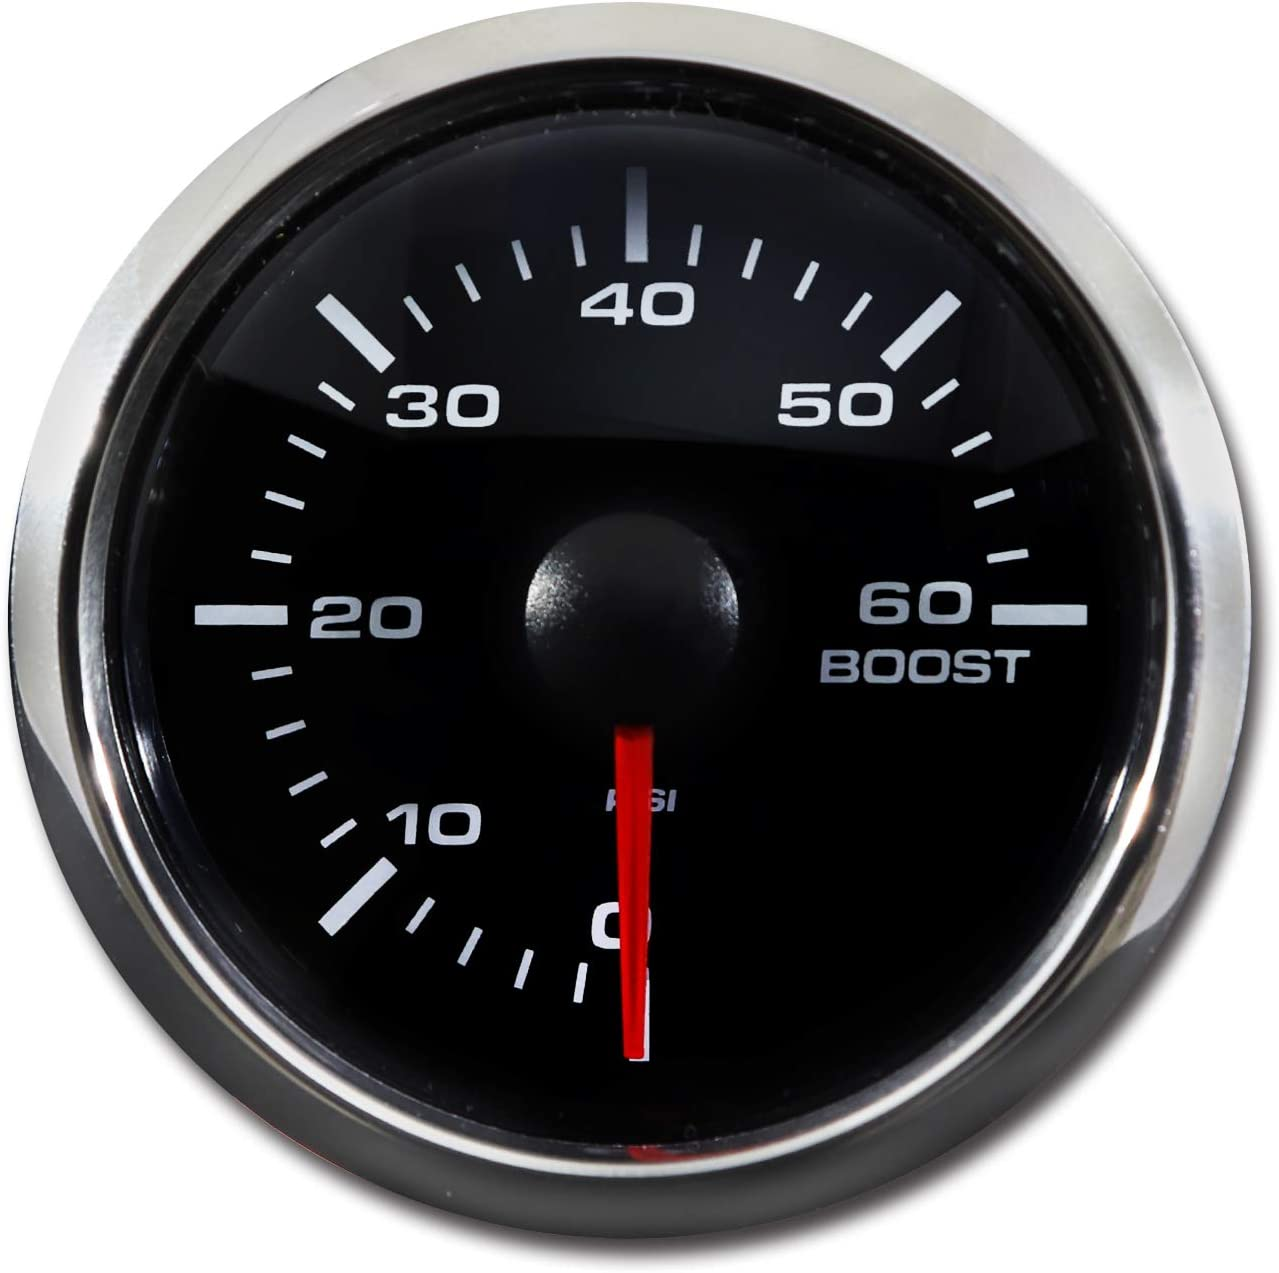 White LED Digital 60 PSI Boost Gauge Kit Includes Electronic Pressure Sensor Waterproof Pin-Style install